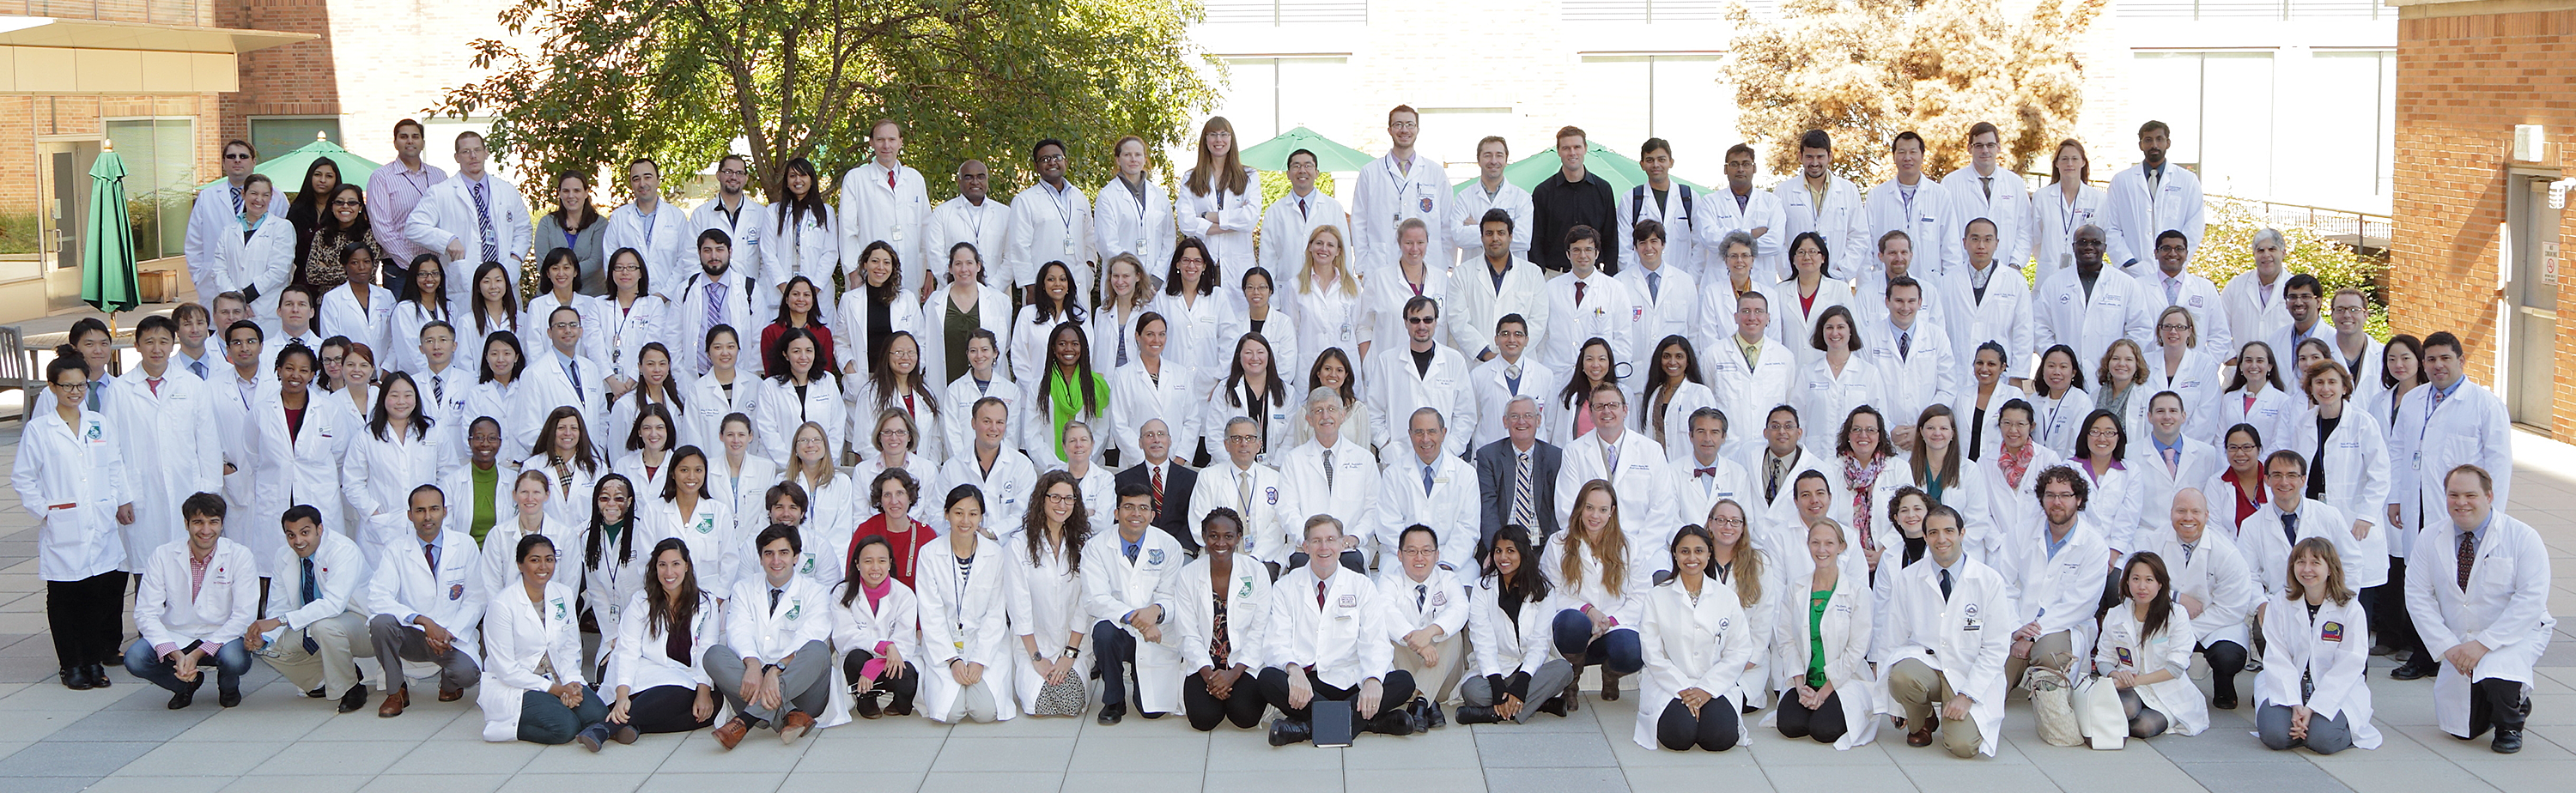 Group photo of NIH clinical fellows and faculty